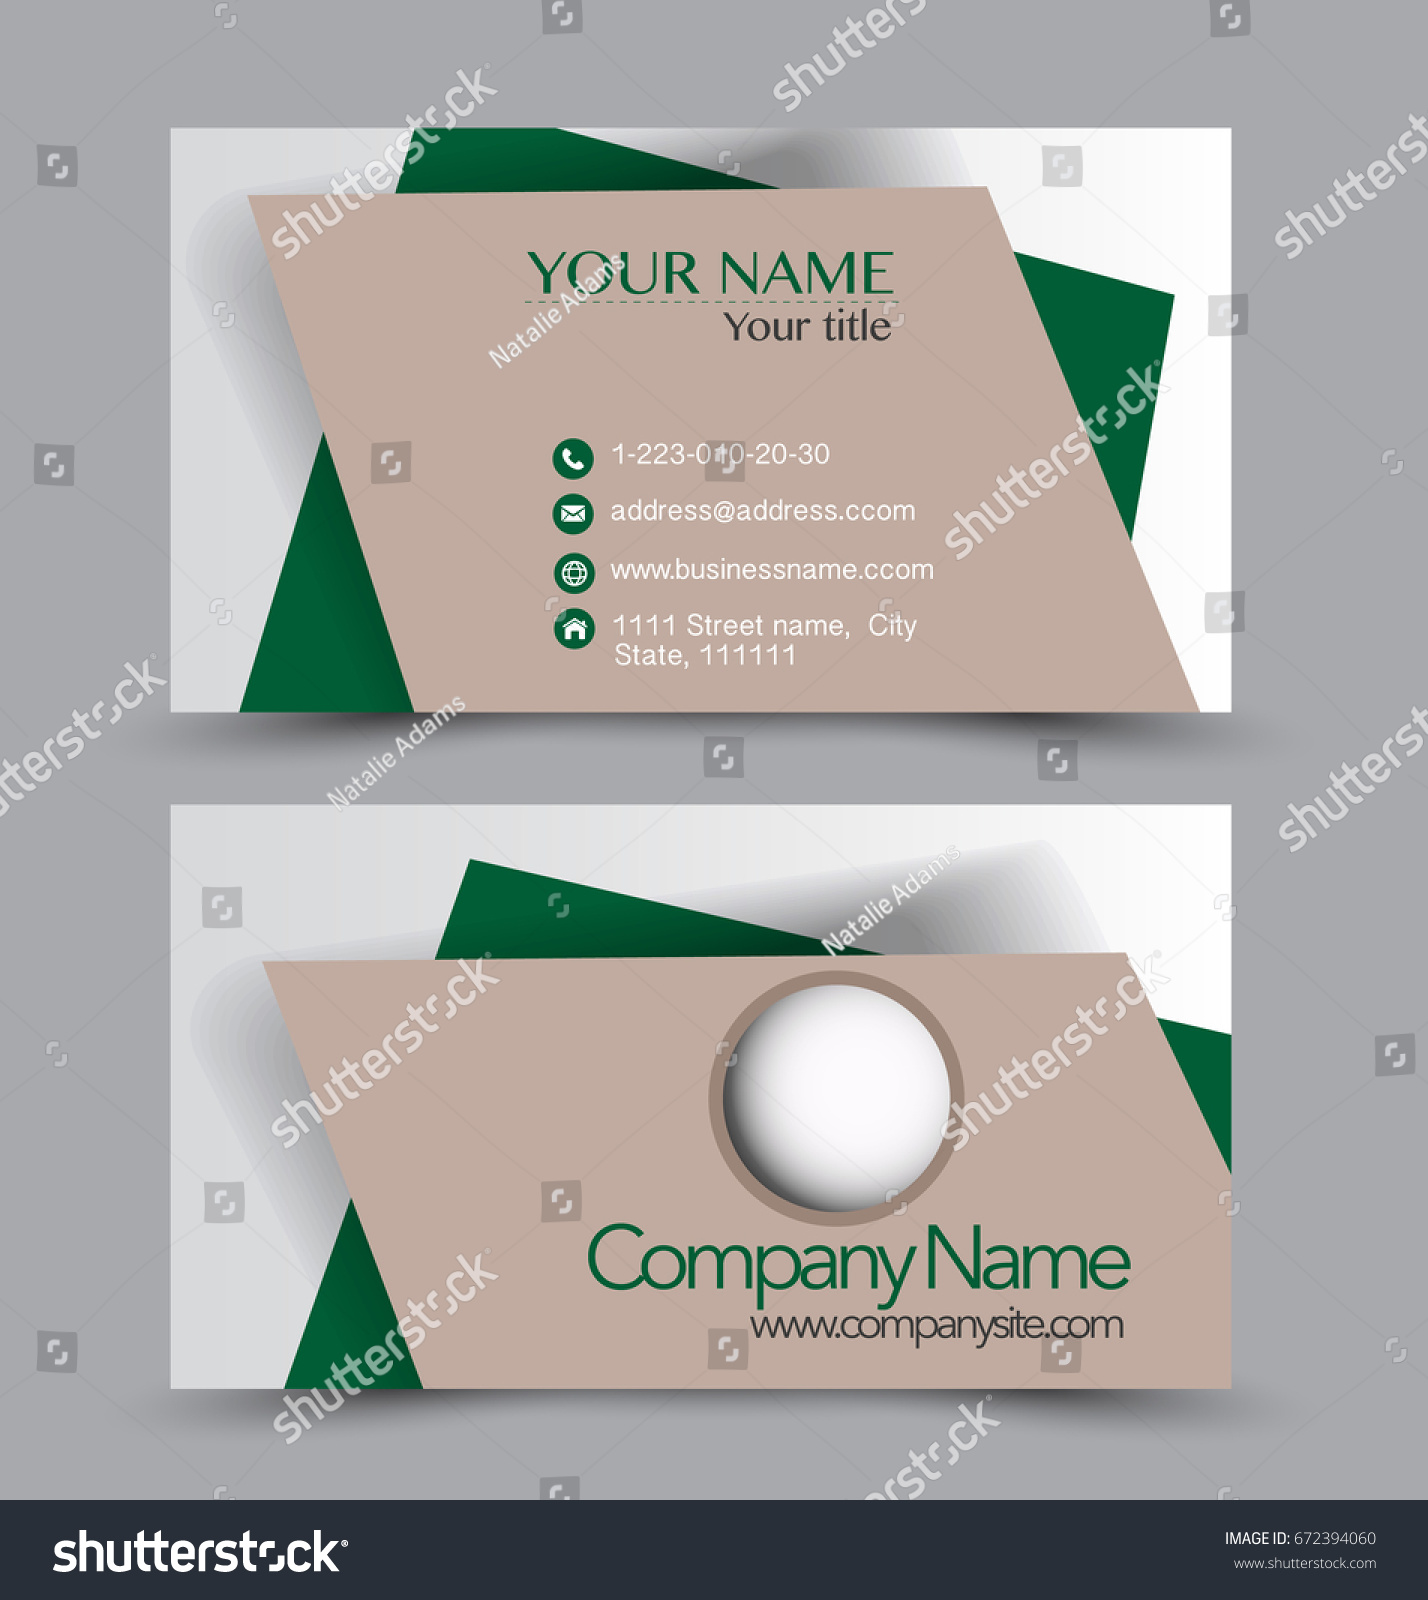 Template for business card gallery free business cards business card set template business identity stock vector business card set template for business identity corporate magicingreecefo Image collections